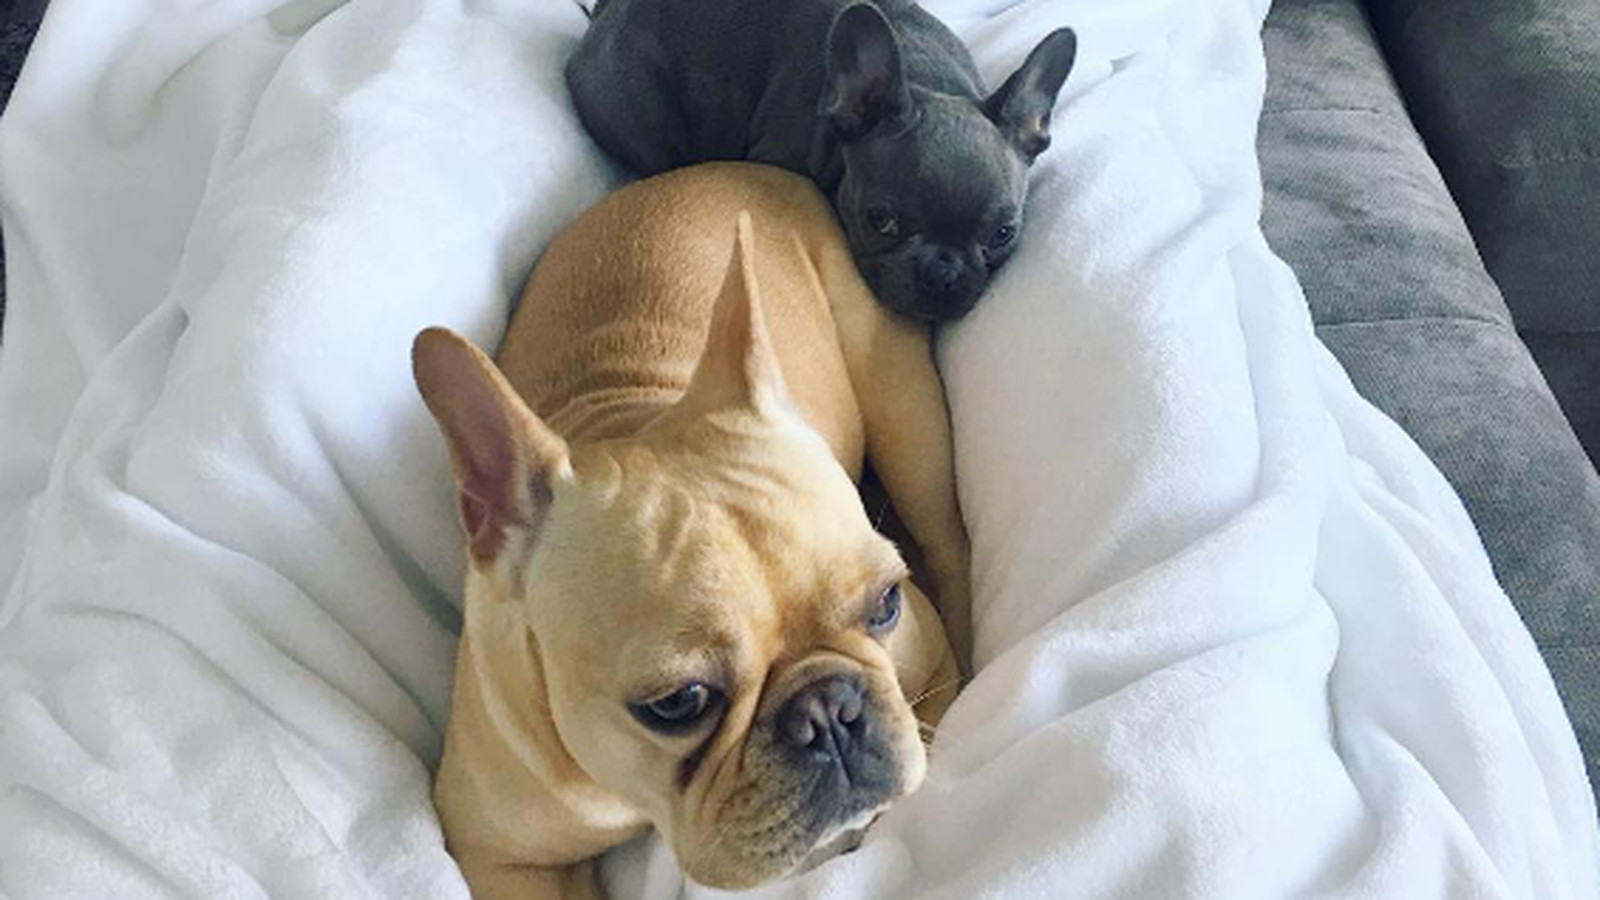 Cooper___cooper_and_pippa_da_frenchies____instagram_photos_and_videos.0.0